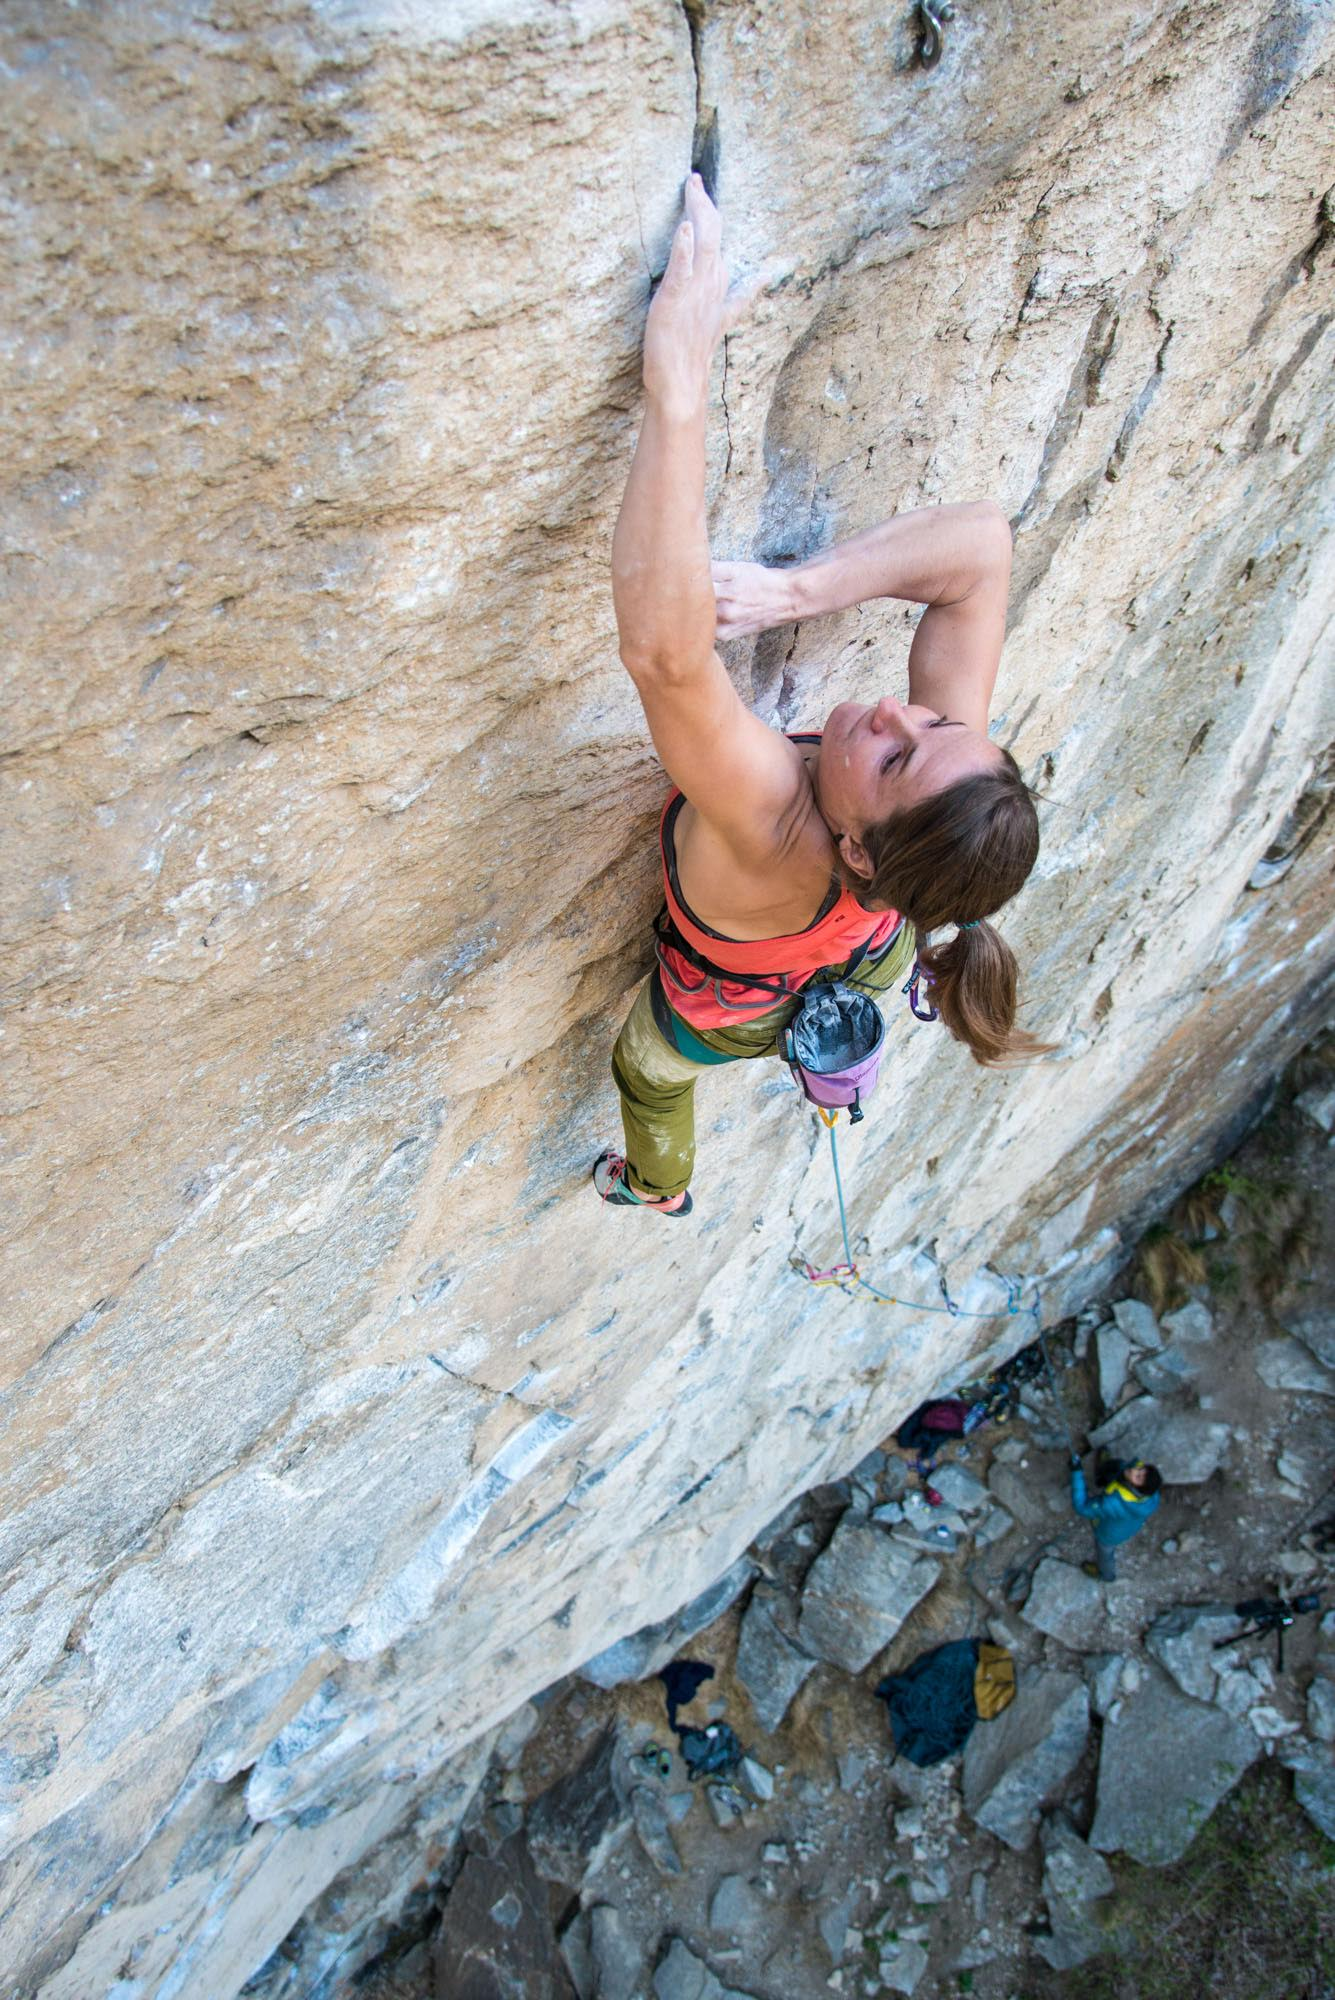 Zangerl sets up for the crux moves. [Photo] Richard Felderer